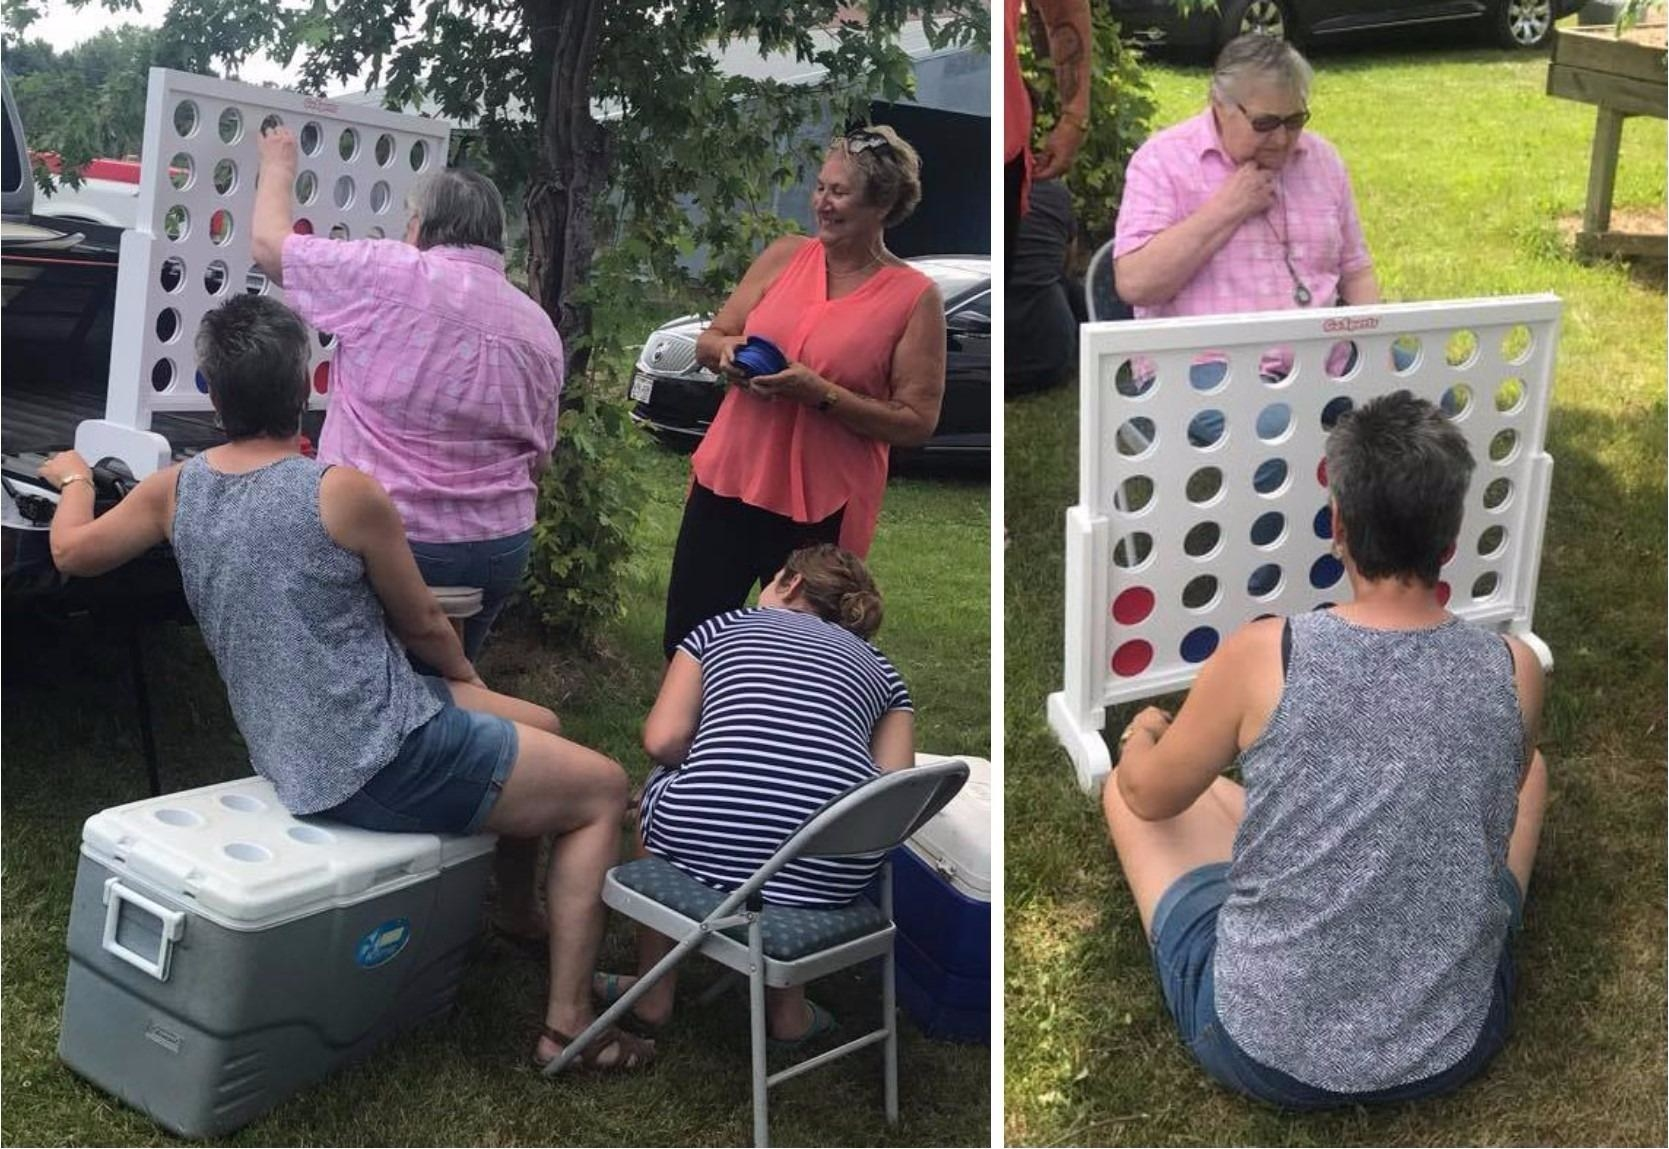 reviewer side by side images of adults playing the GoSports giant 4 in a row game outside